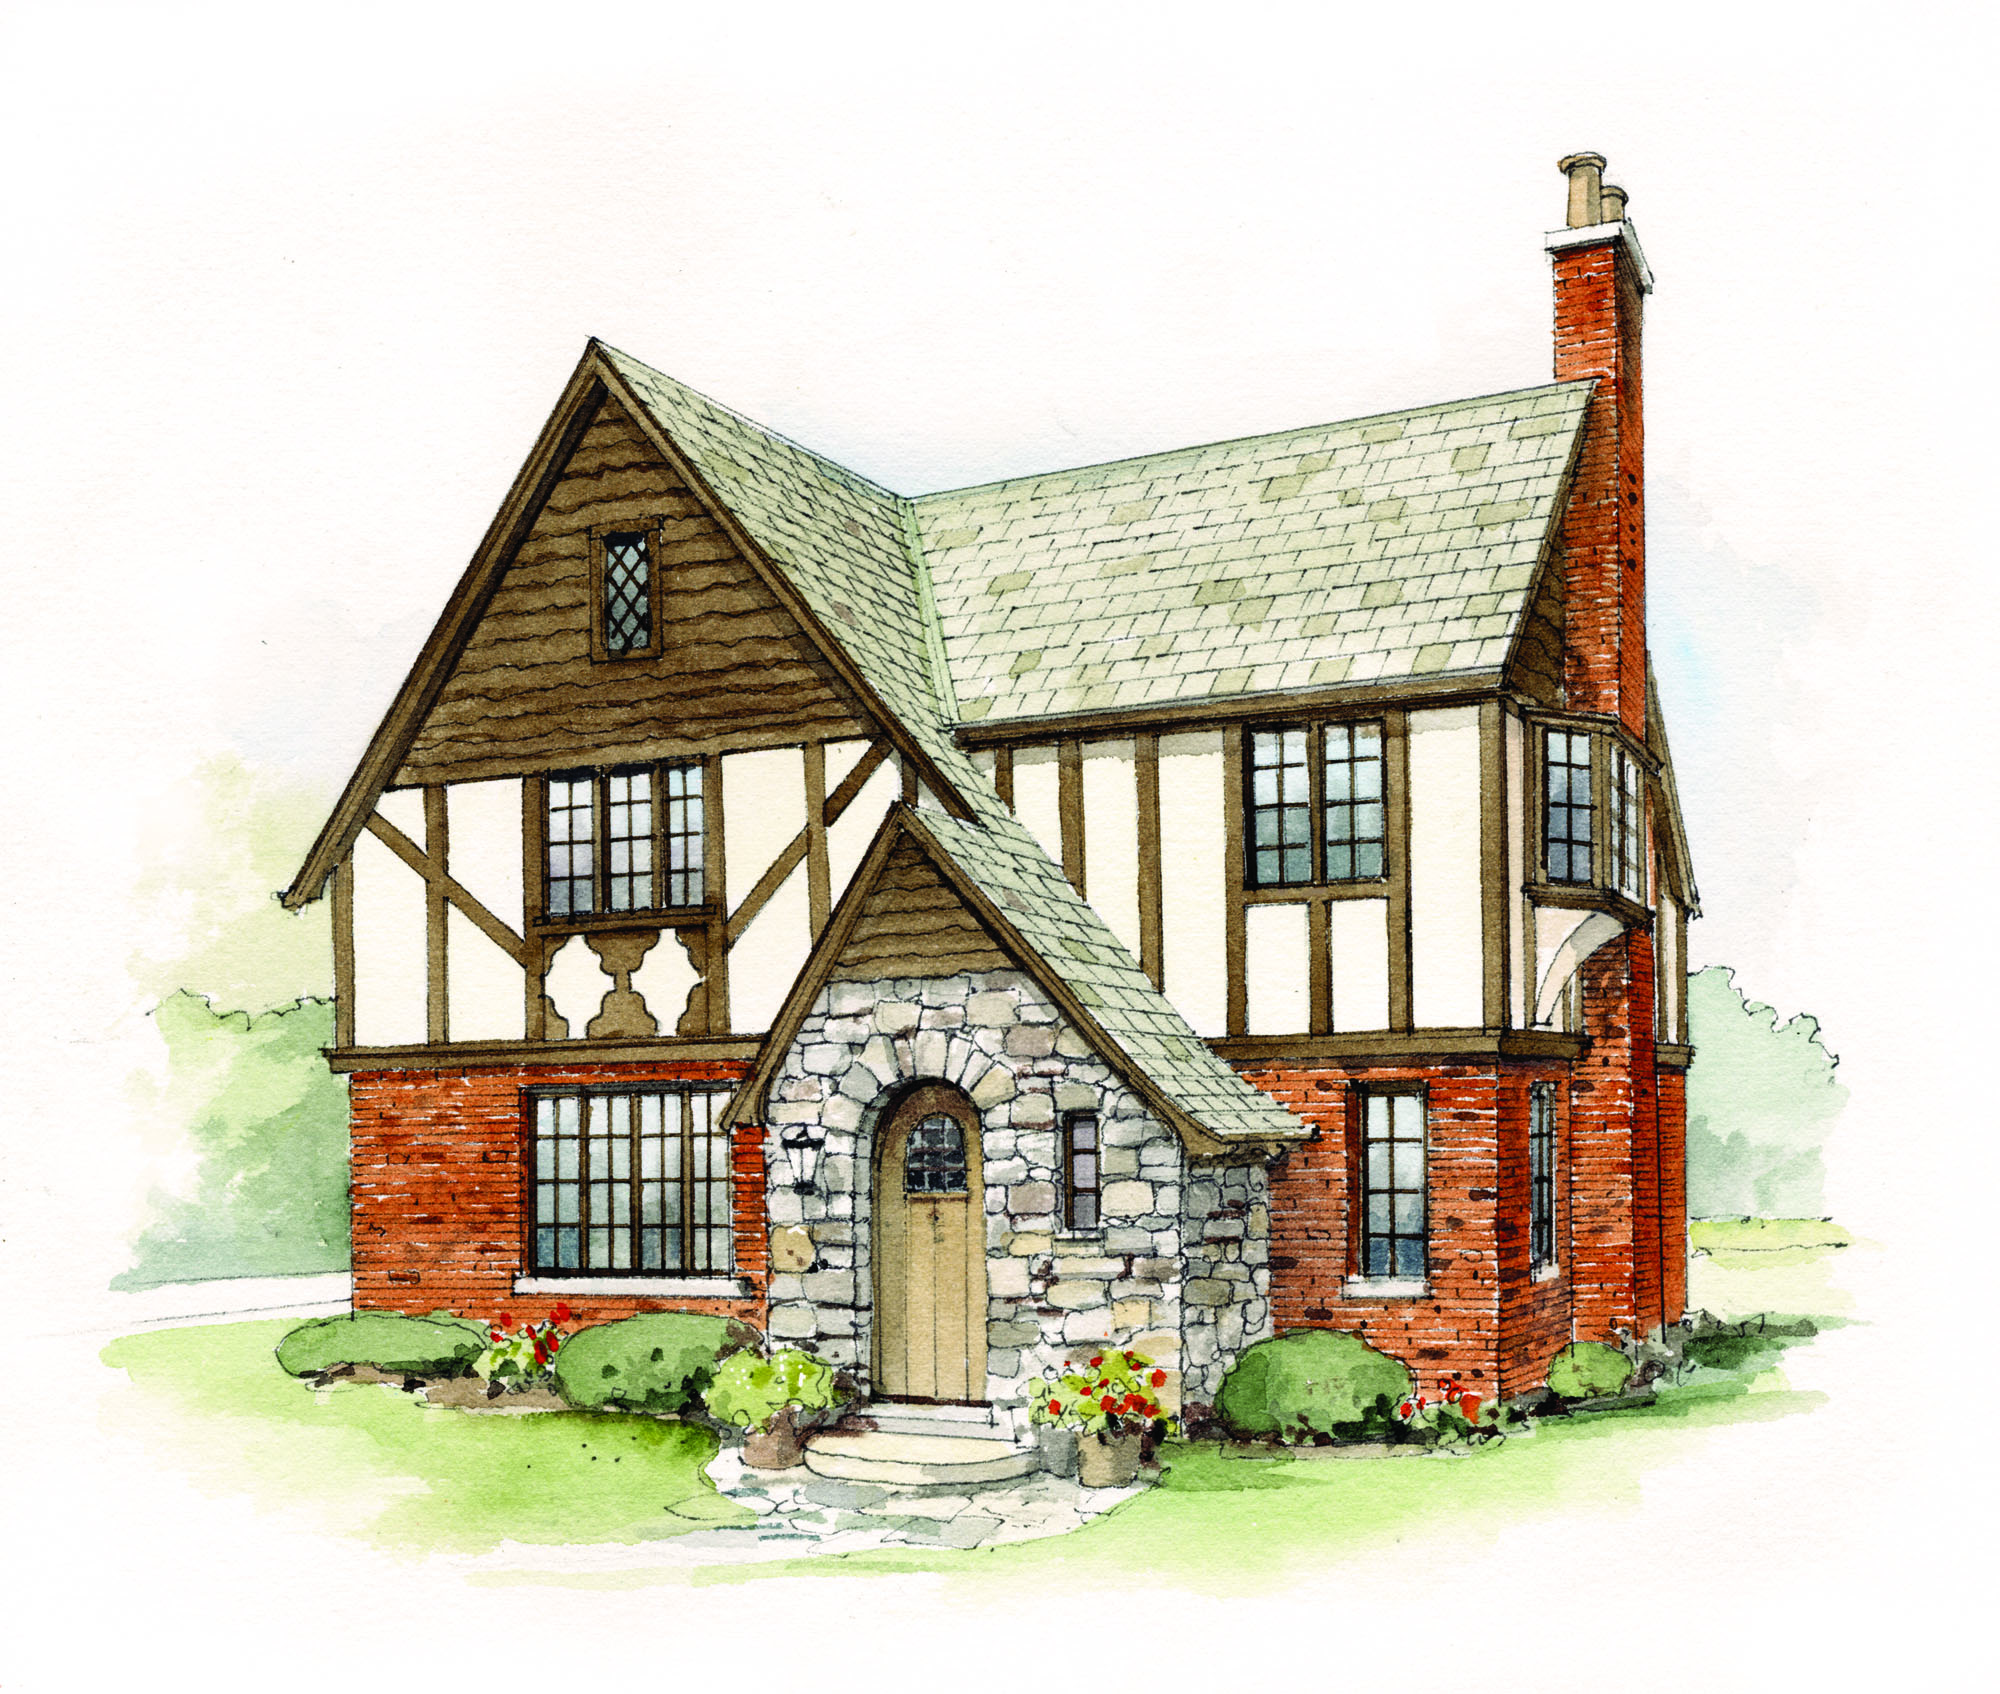 A suburban Tudor of brick, stucco, and slate has many of the style's hallmarks: steep roof, storybook entry, a picturesque chimney, casement windows and an oriel (on the side), and decorative half-timbering.